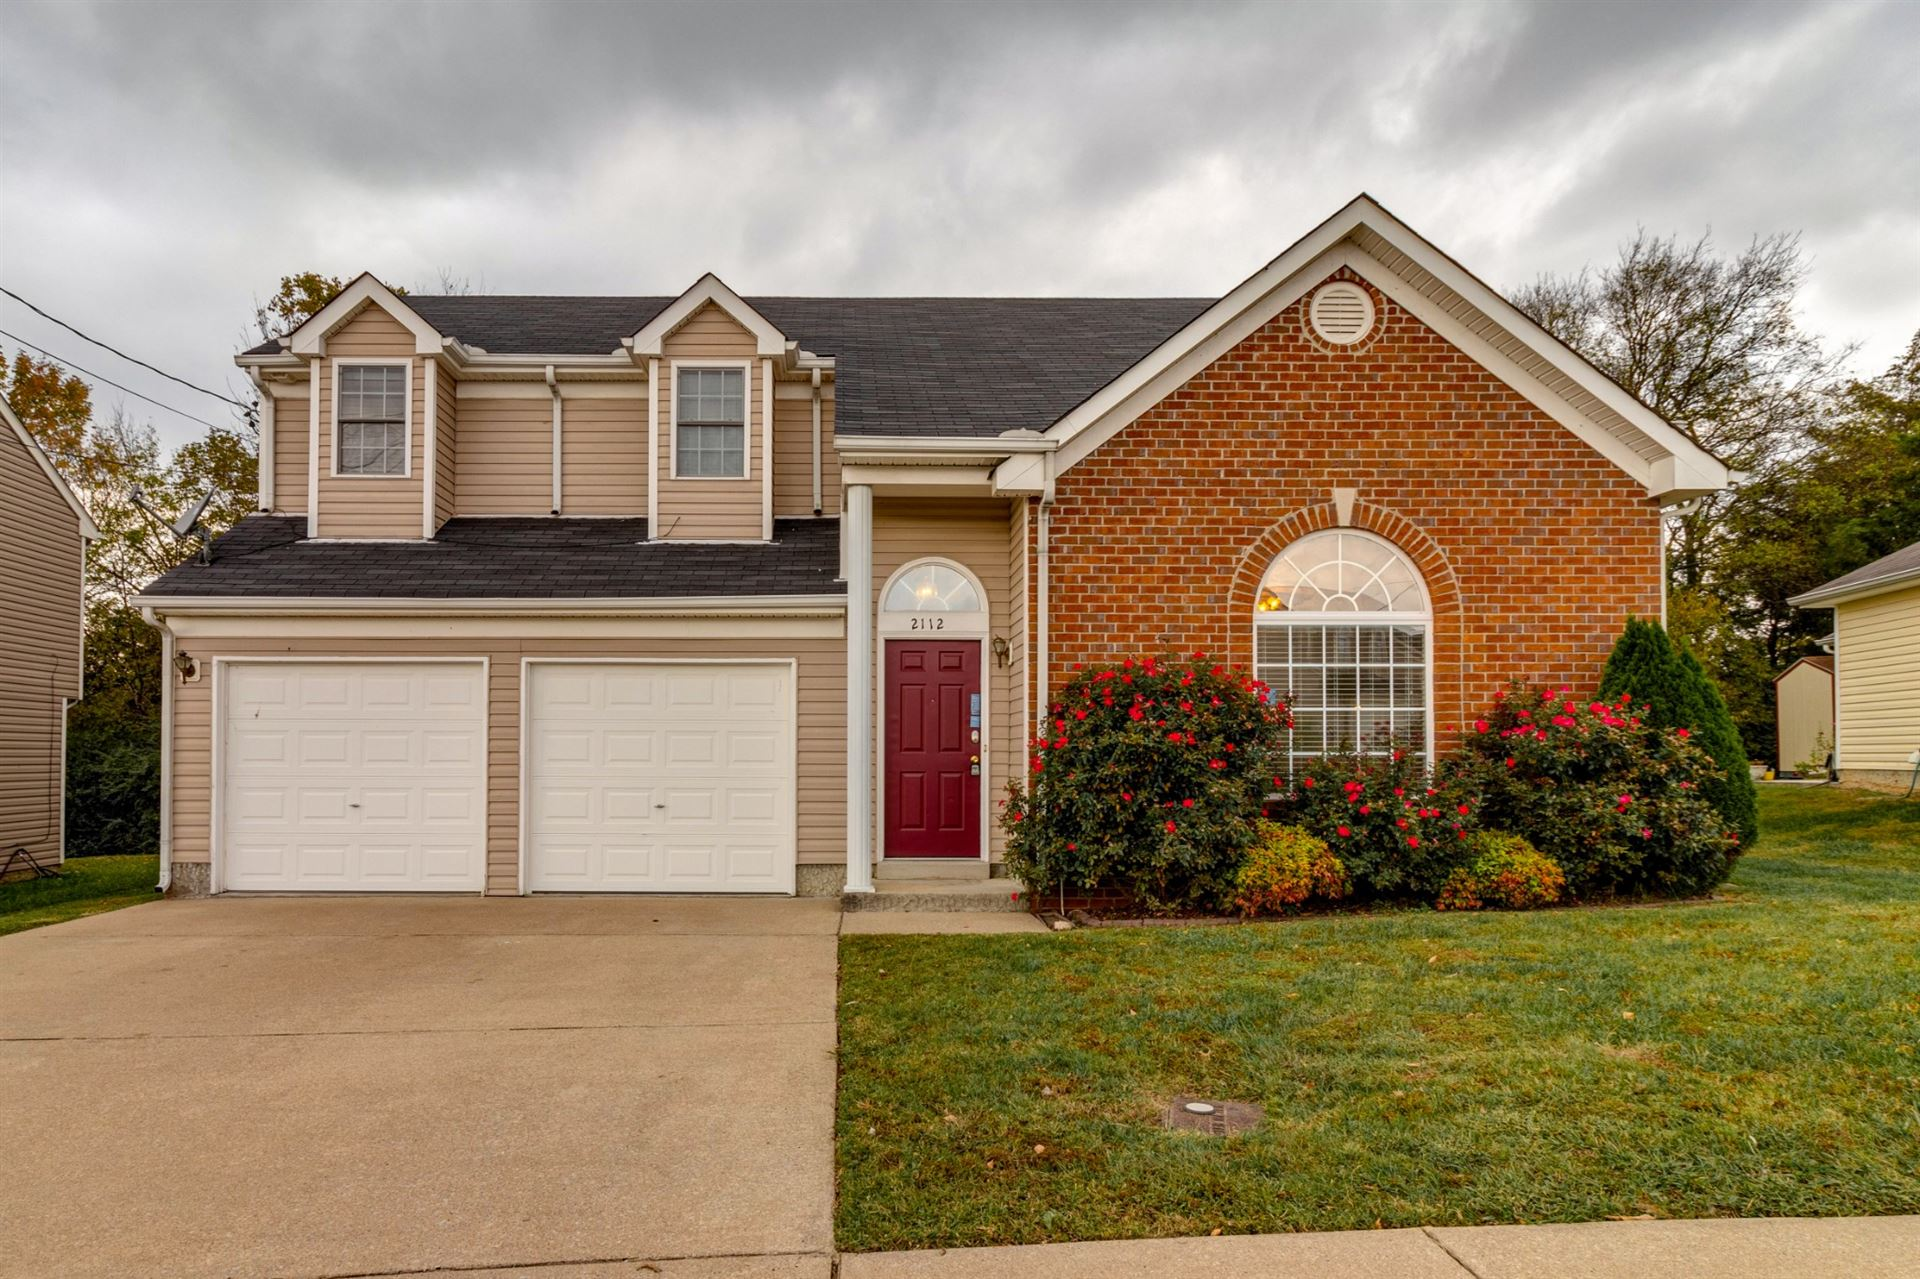 2112 Candlebrook Ct, Madison, TN 37115 - MLS#: 2199885